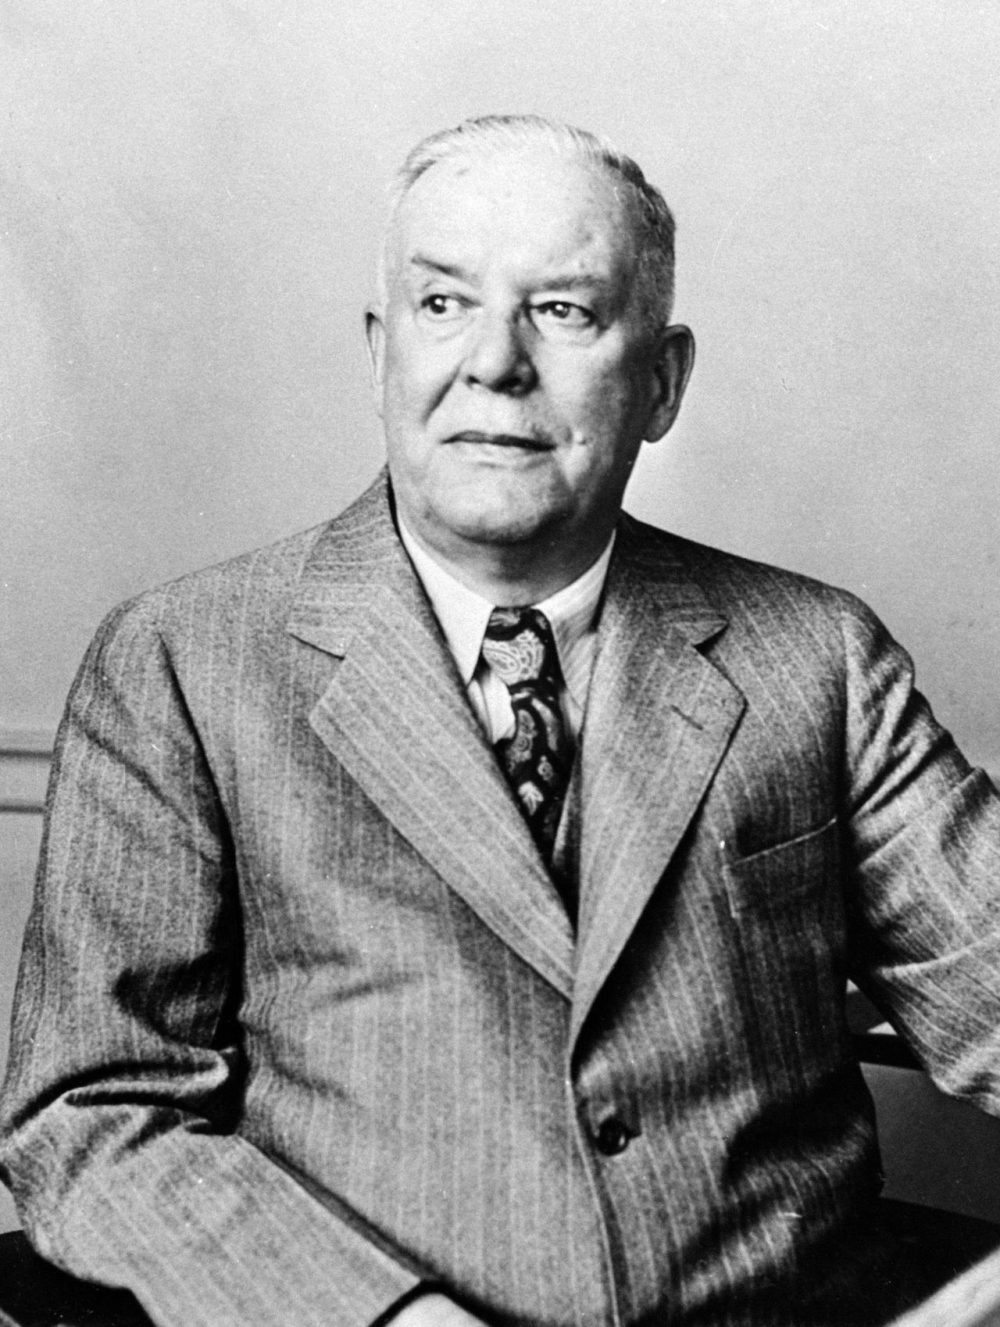 poet and author remembers the life and works of wallace stevens